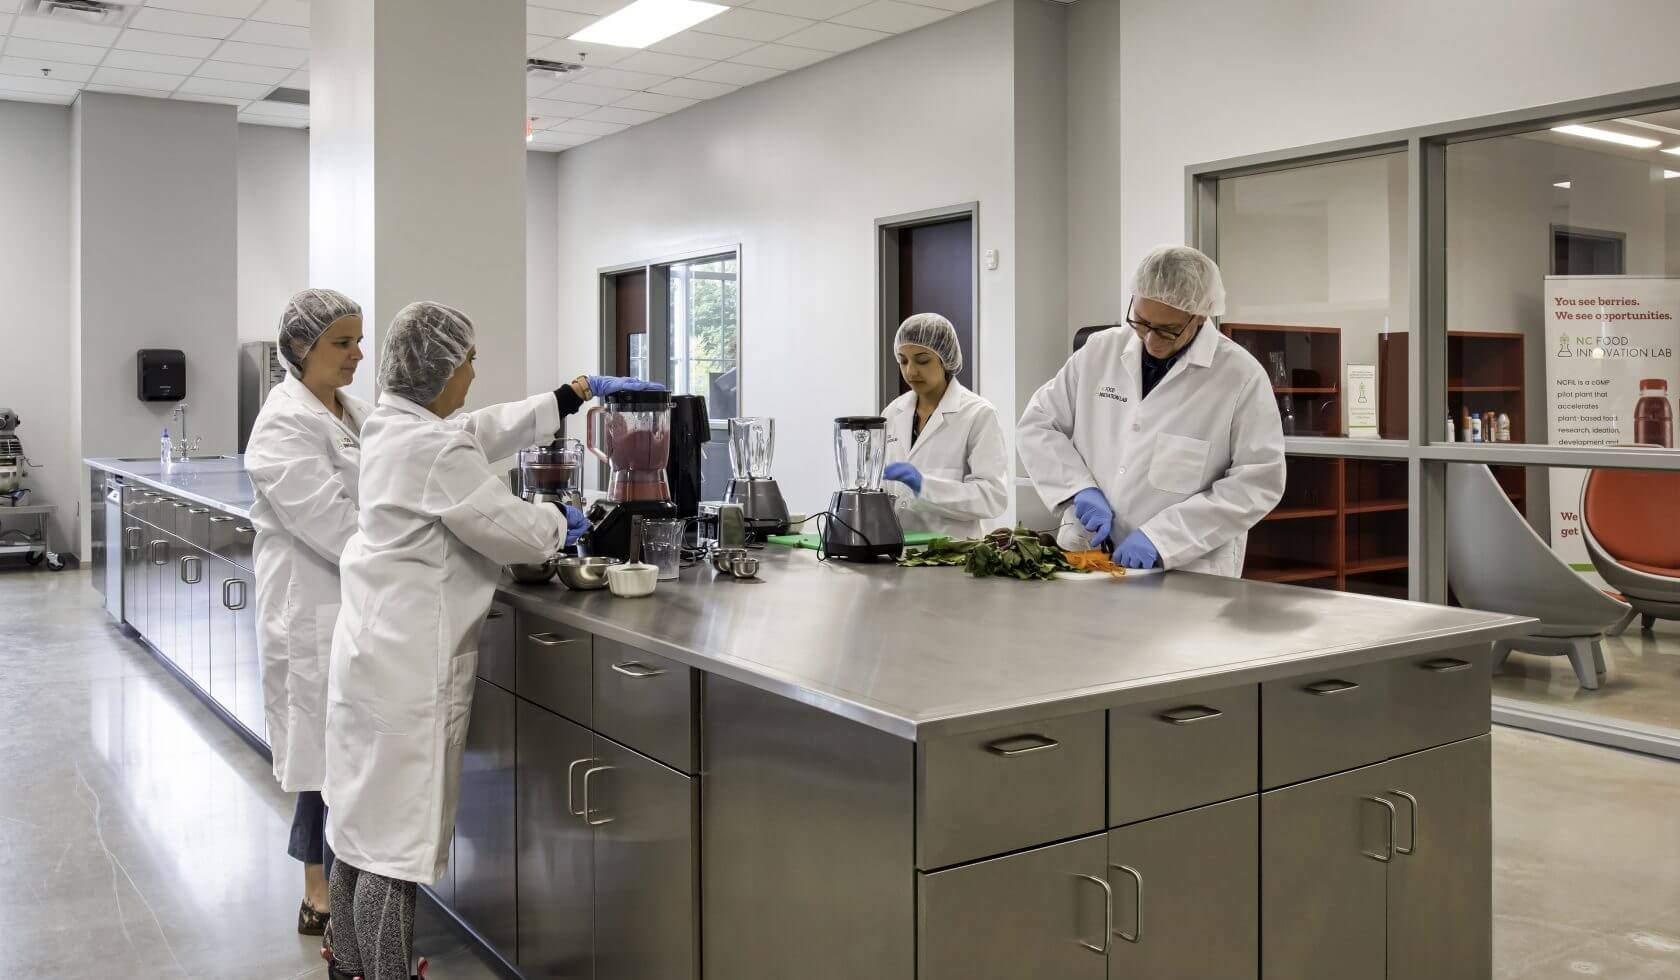 NCFIL plant-based food manufacturing innovation lab